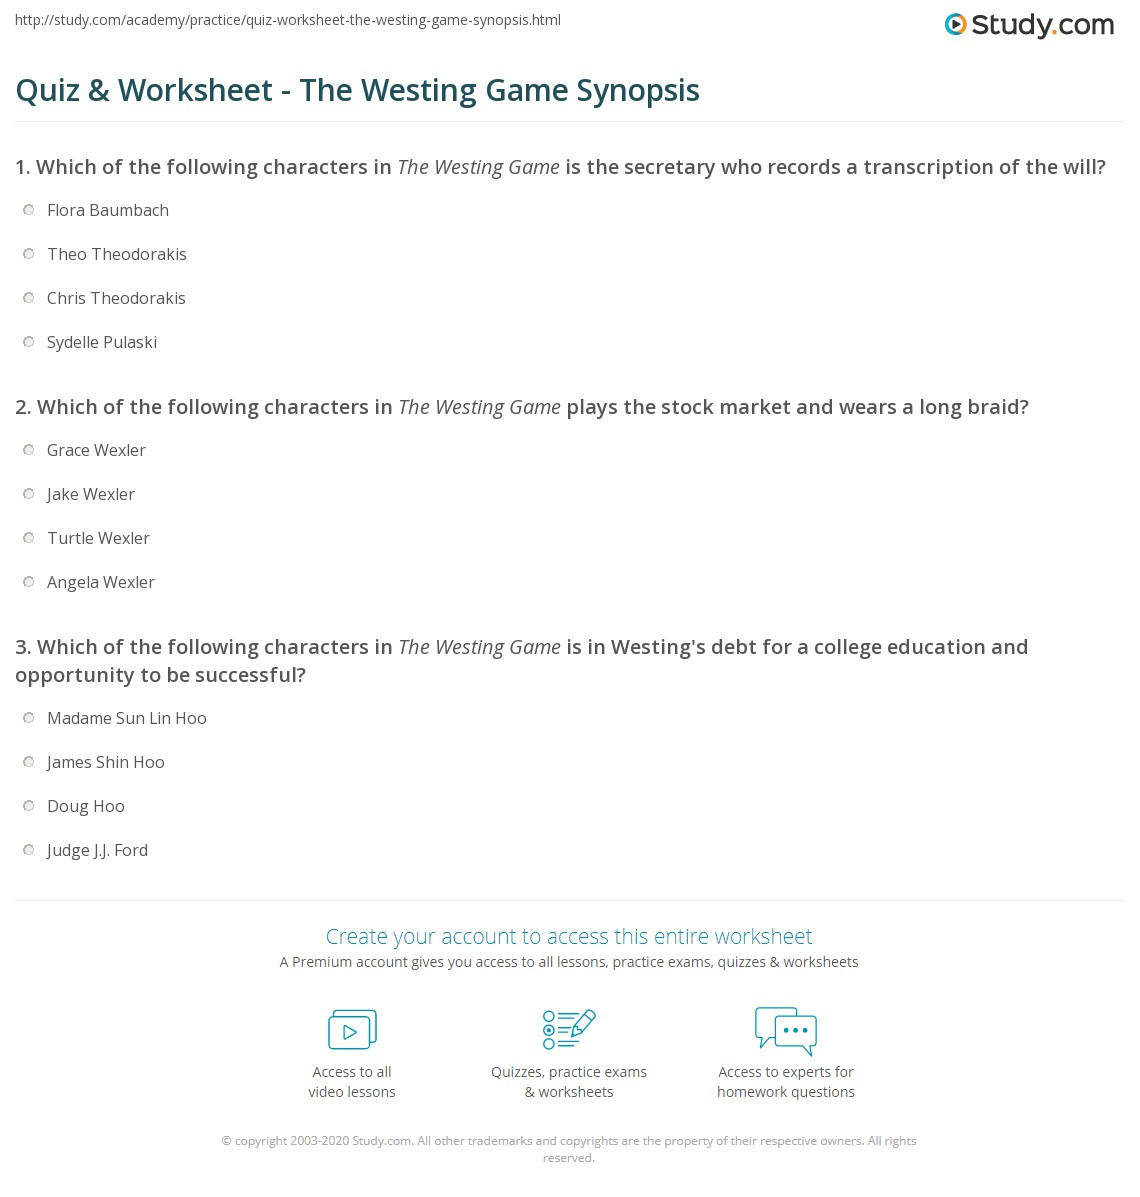 Worksheet The Westing Game Worksheets quiz worksheet the westing game synopsis study com print summary characters worksheet